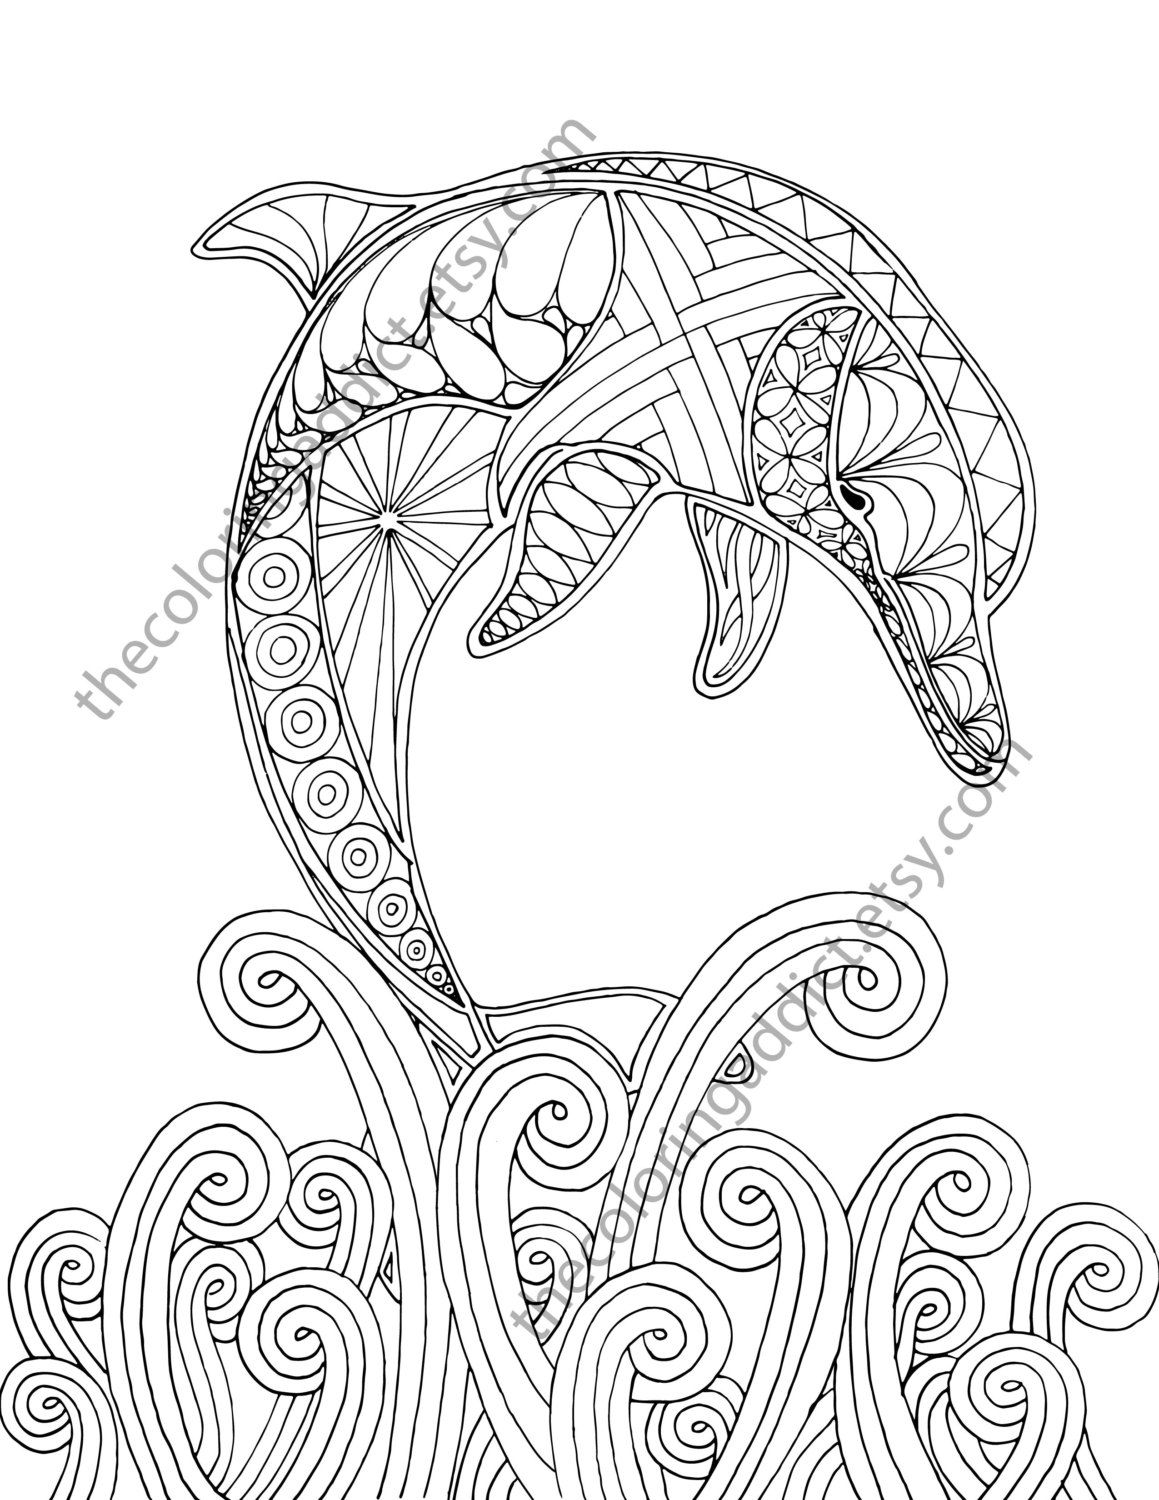 Dolphin Coloring Page Adult Coloring Sheet Nautical Coloring Ocean Colouring Book Printable